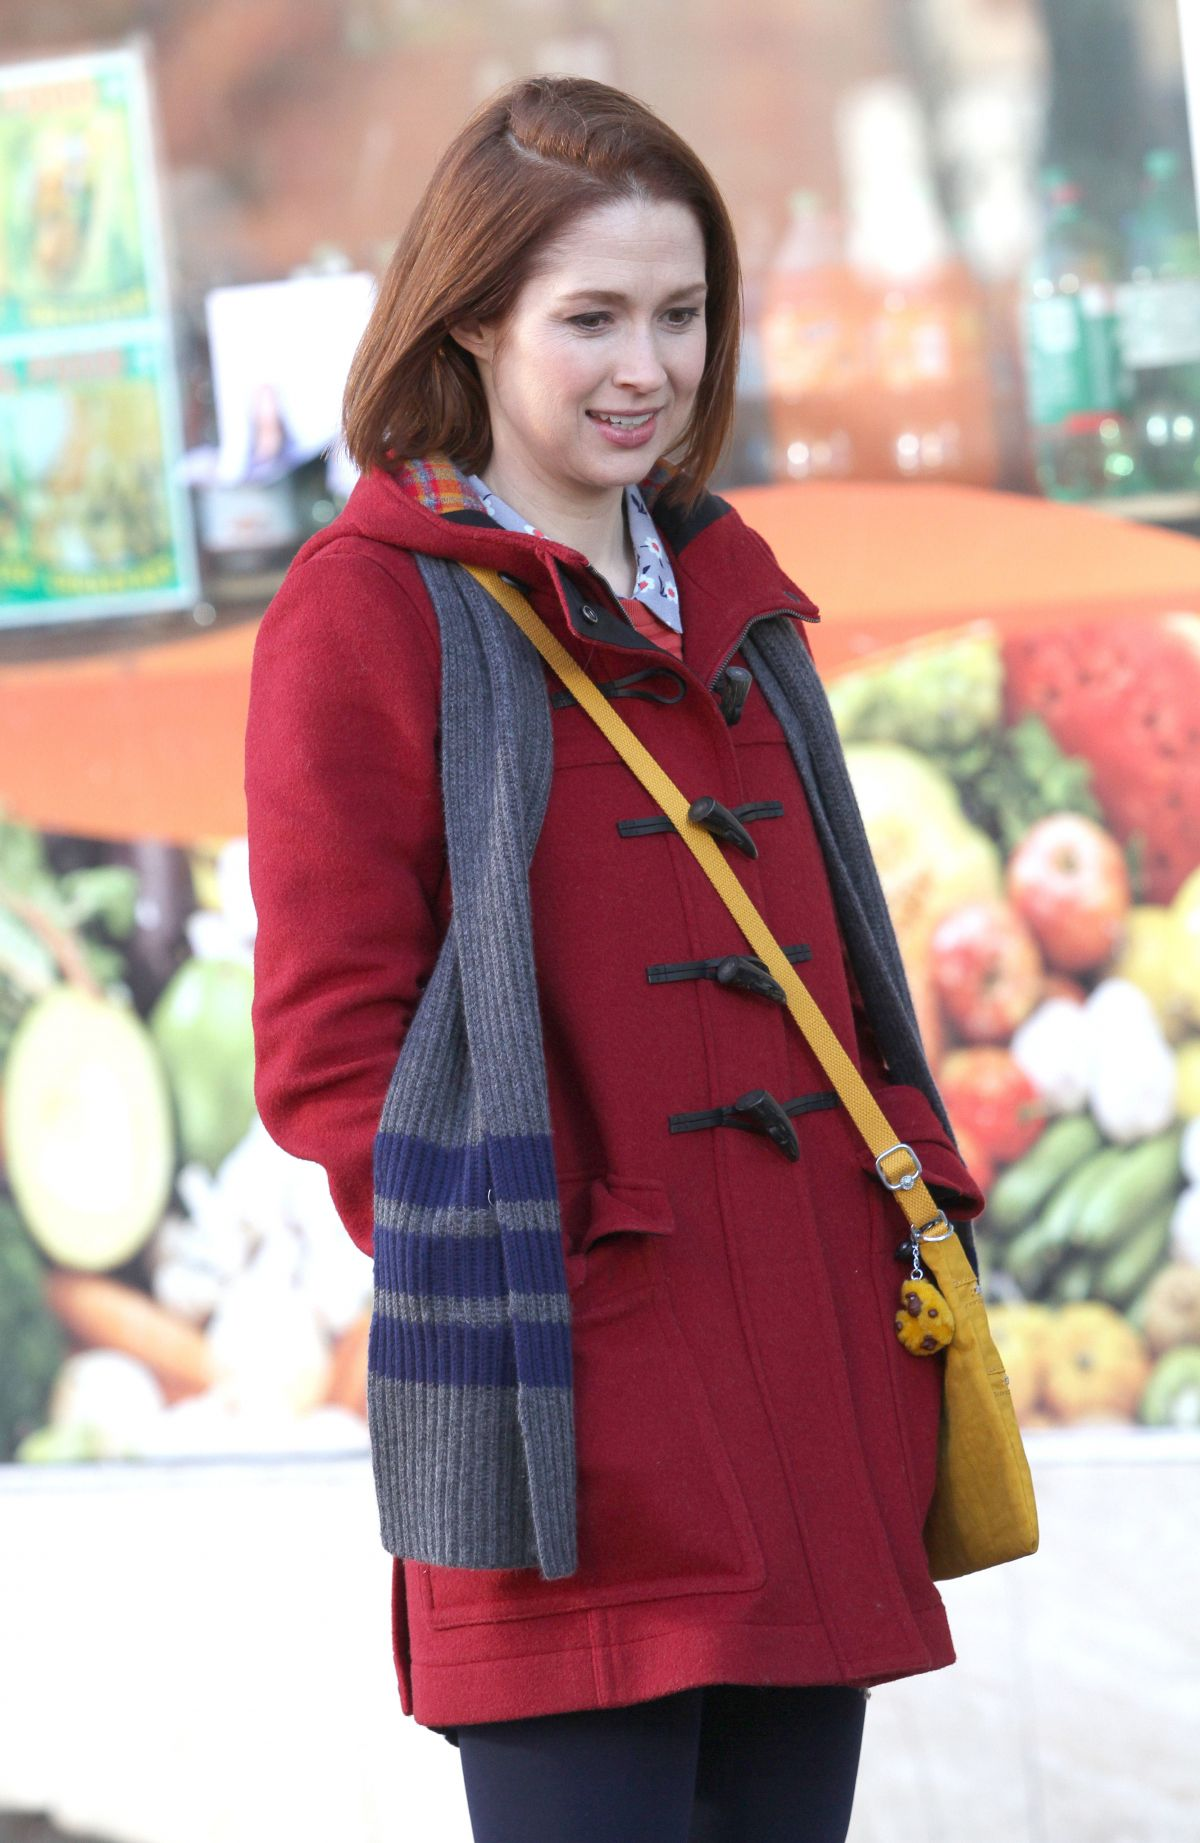 ELLIE KEMPER on the Set of